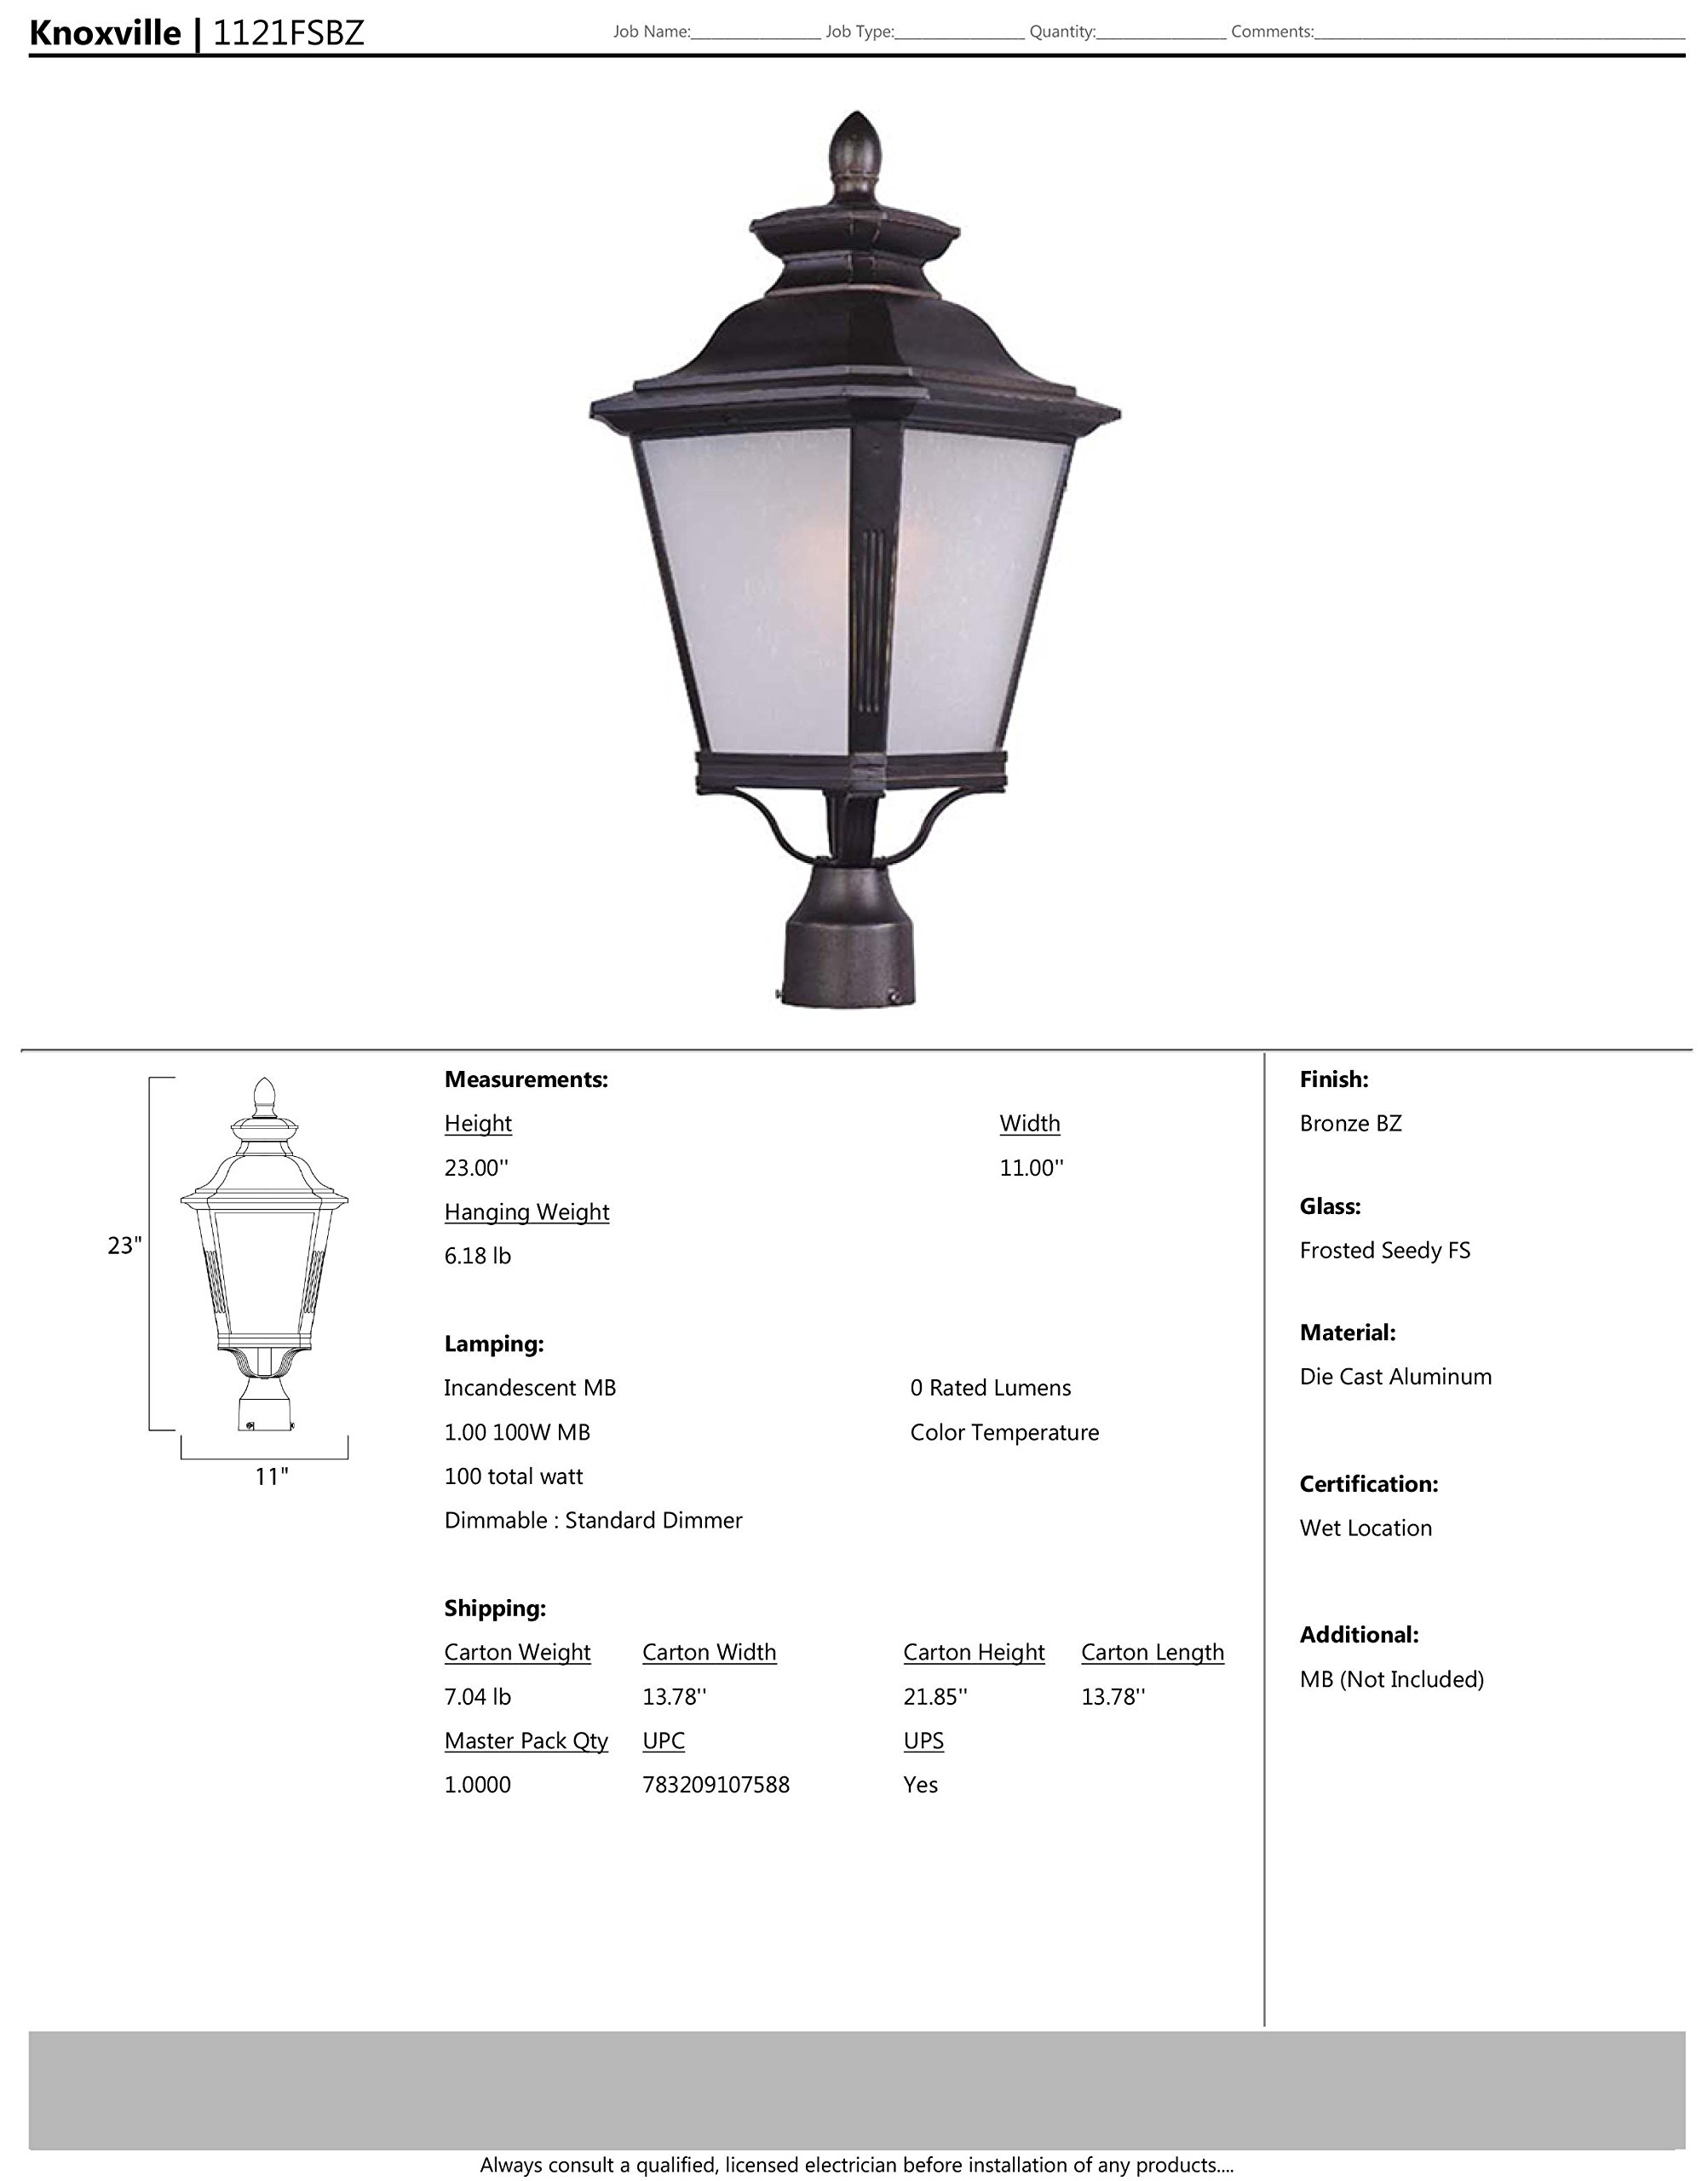 Maxim 1121FSBZ Knoxville 1-Light Outdoor Pole/Post Lantern, Bronze Finish, Frosted Seedy Glass, MB Incandescent Incandescent Bulb , 3W Max., Dry Safety Rating, 3000K Color Temp, Standard Triac/Lutron or Leviton Dimmable, Shade Material, 840 Rated Lumens by Maxim Lighting (Image #2)